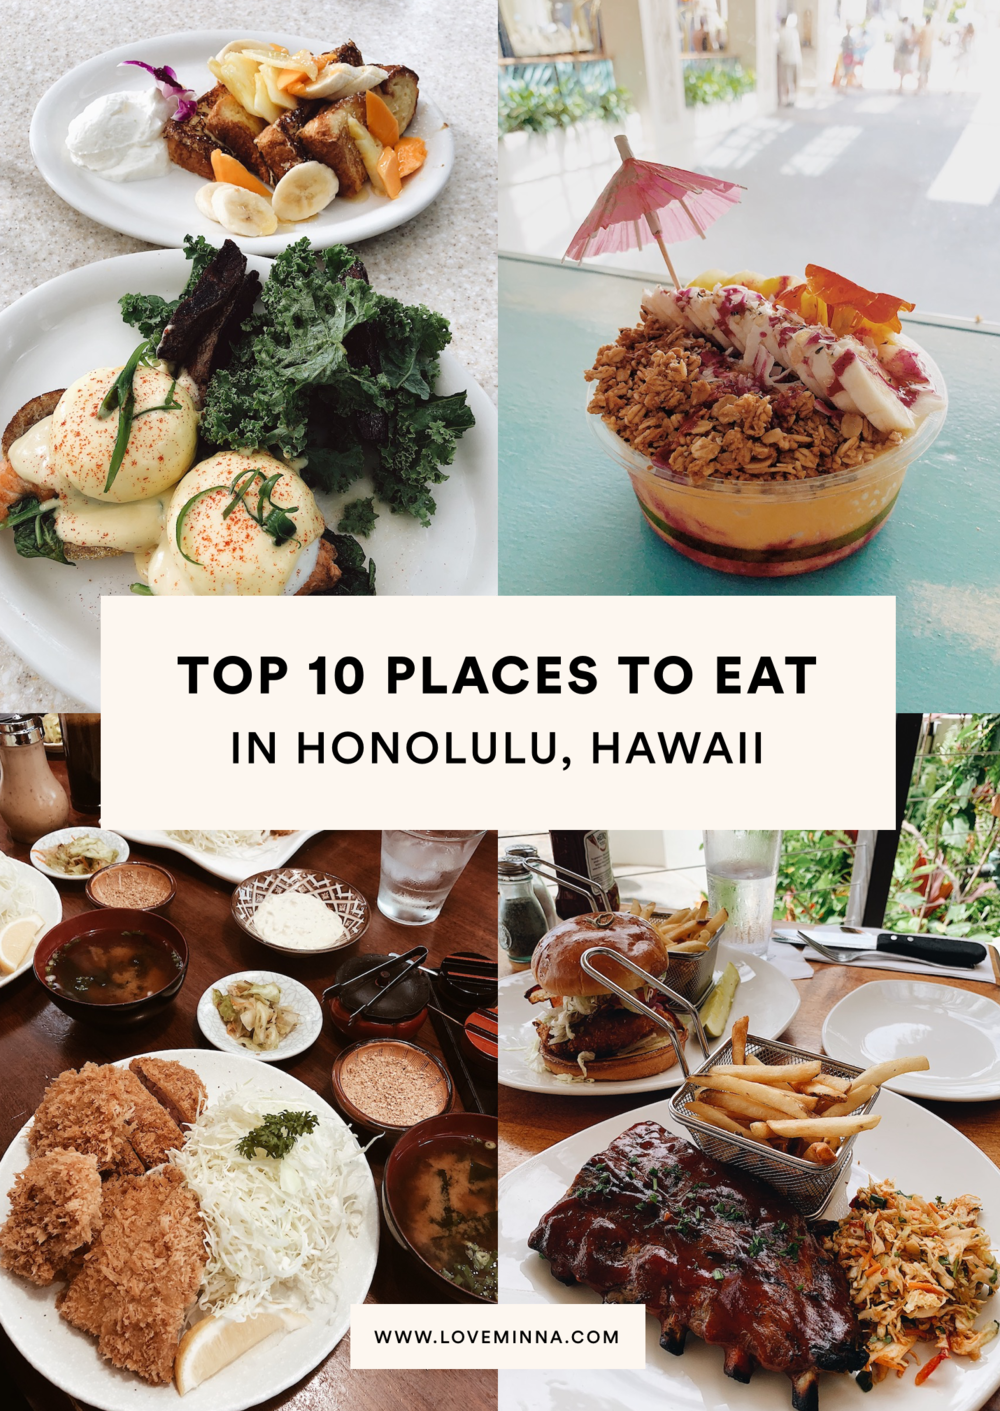 Top 10 Places To Eat In Honolulu Hawaii Love Minna In 2020 Waikiki Hawaii Honolulu Hawaii Places To Eat